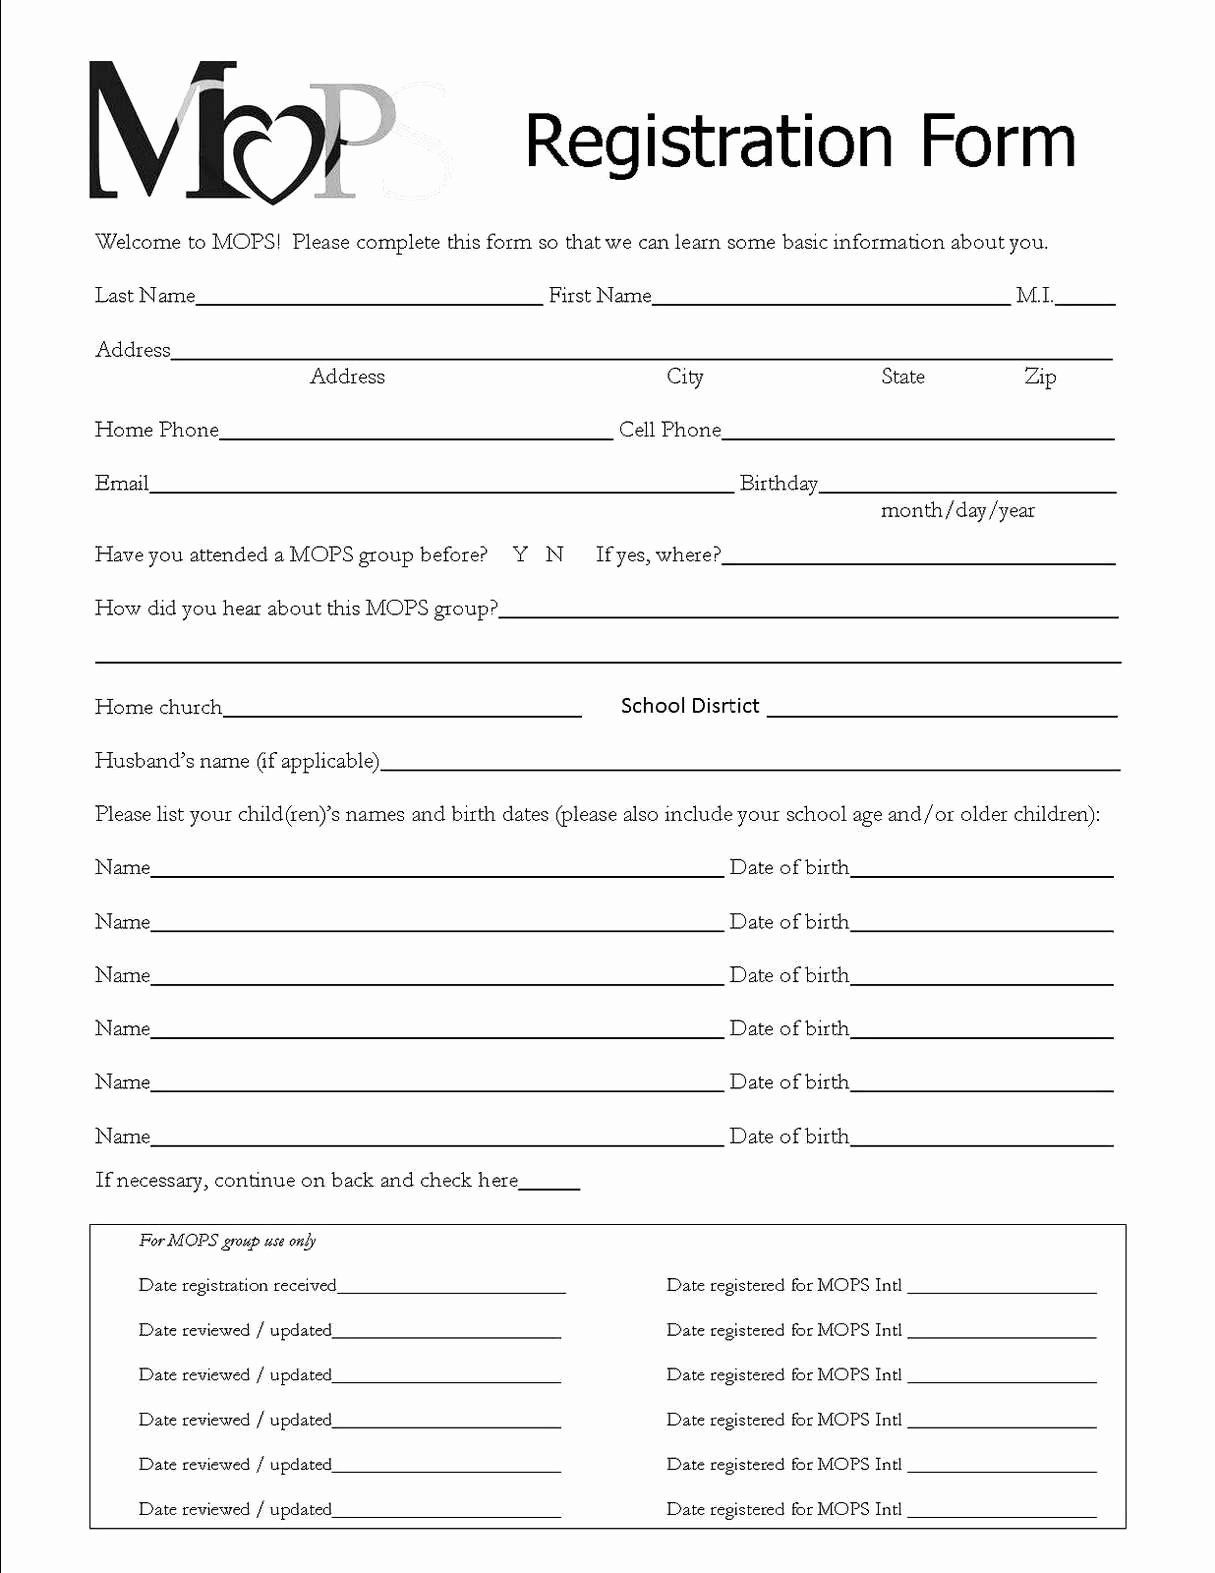 Conference Registration Form Template Word Inspirational Registration Forms Template Free Registration Form Word Template Registration